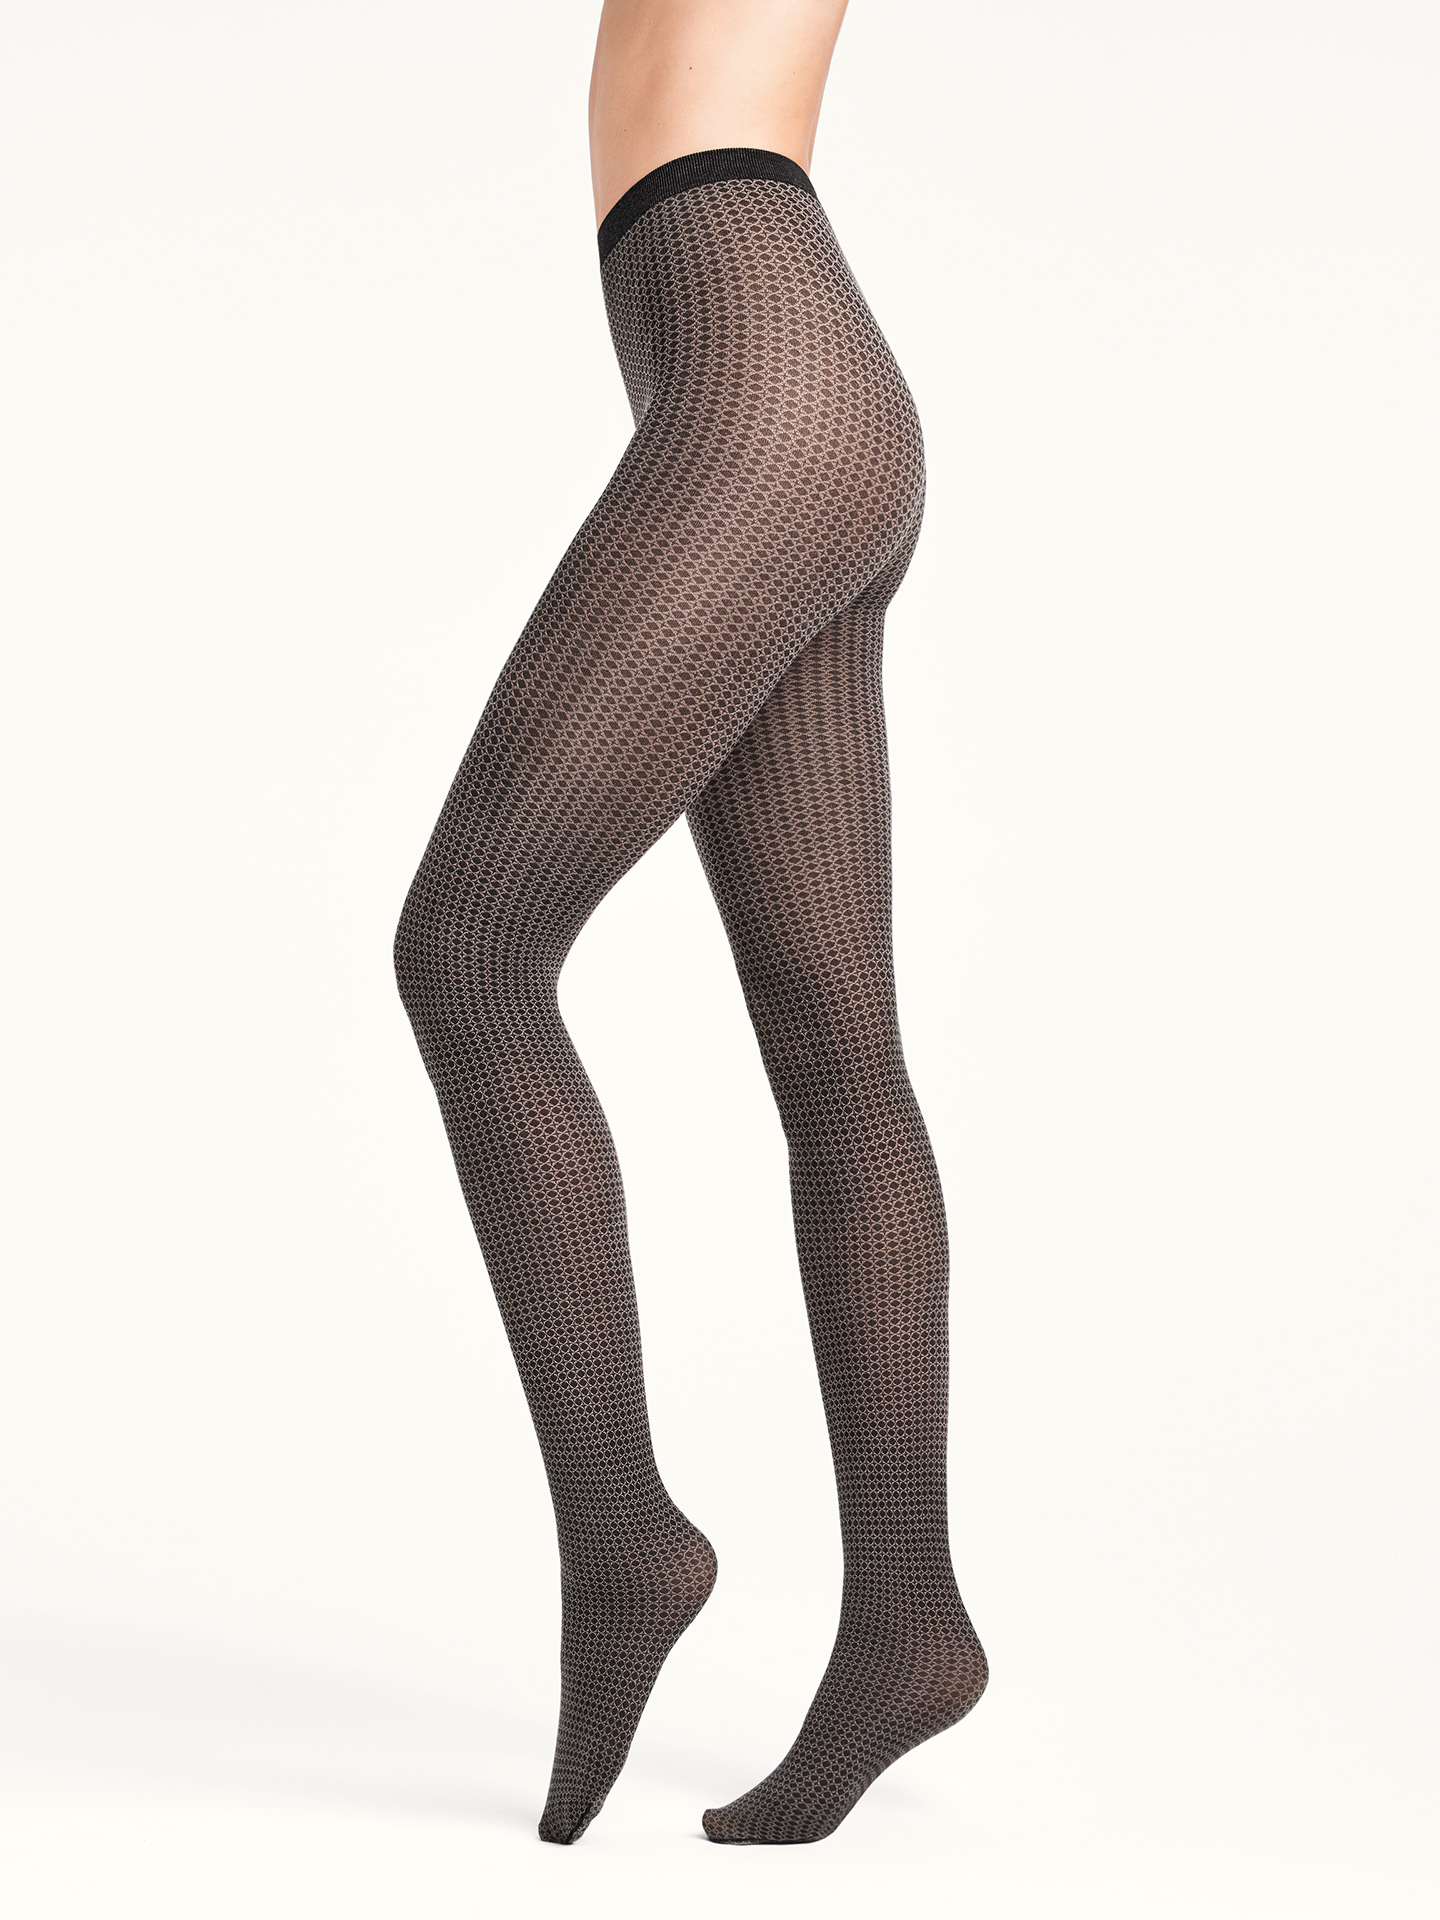 Bianca Tights - black/hematite - L | Sportbekleidung > Sporthosen > Tights | Wolford